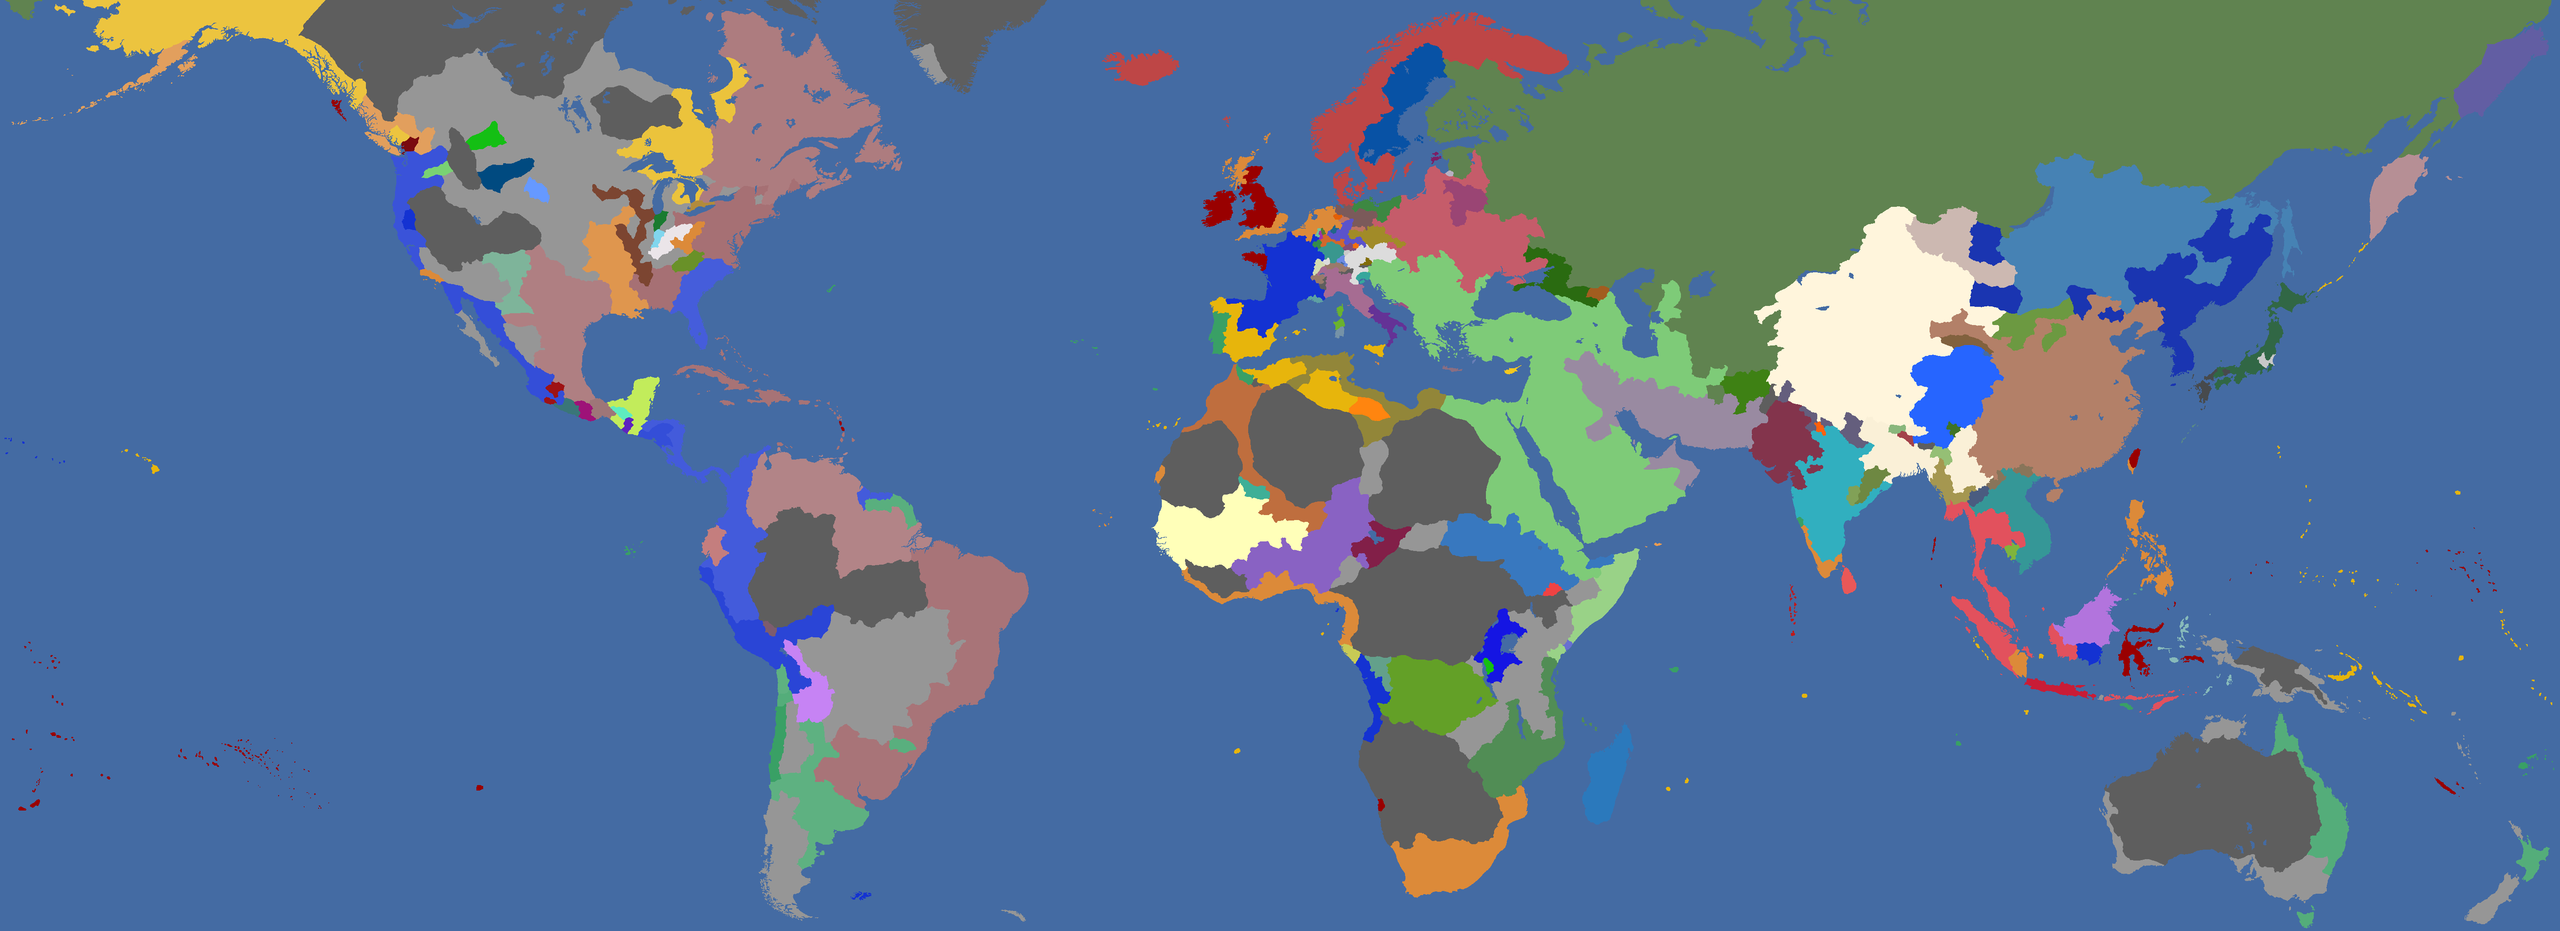 Eu4 Map Ned 1698 09 22 1